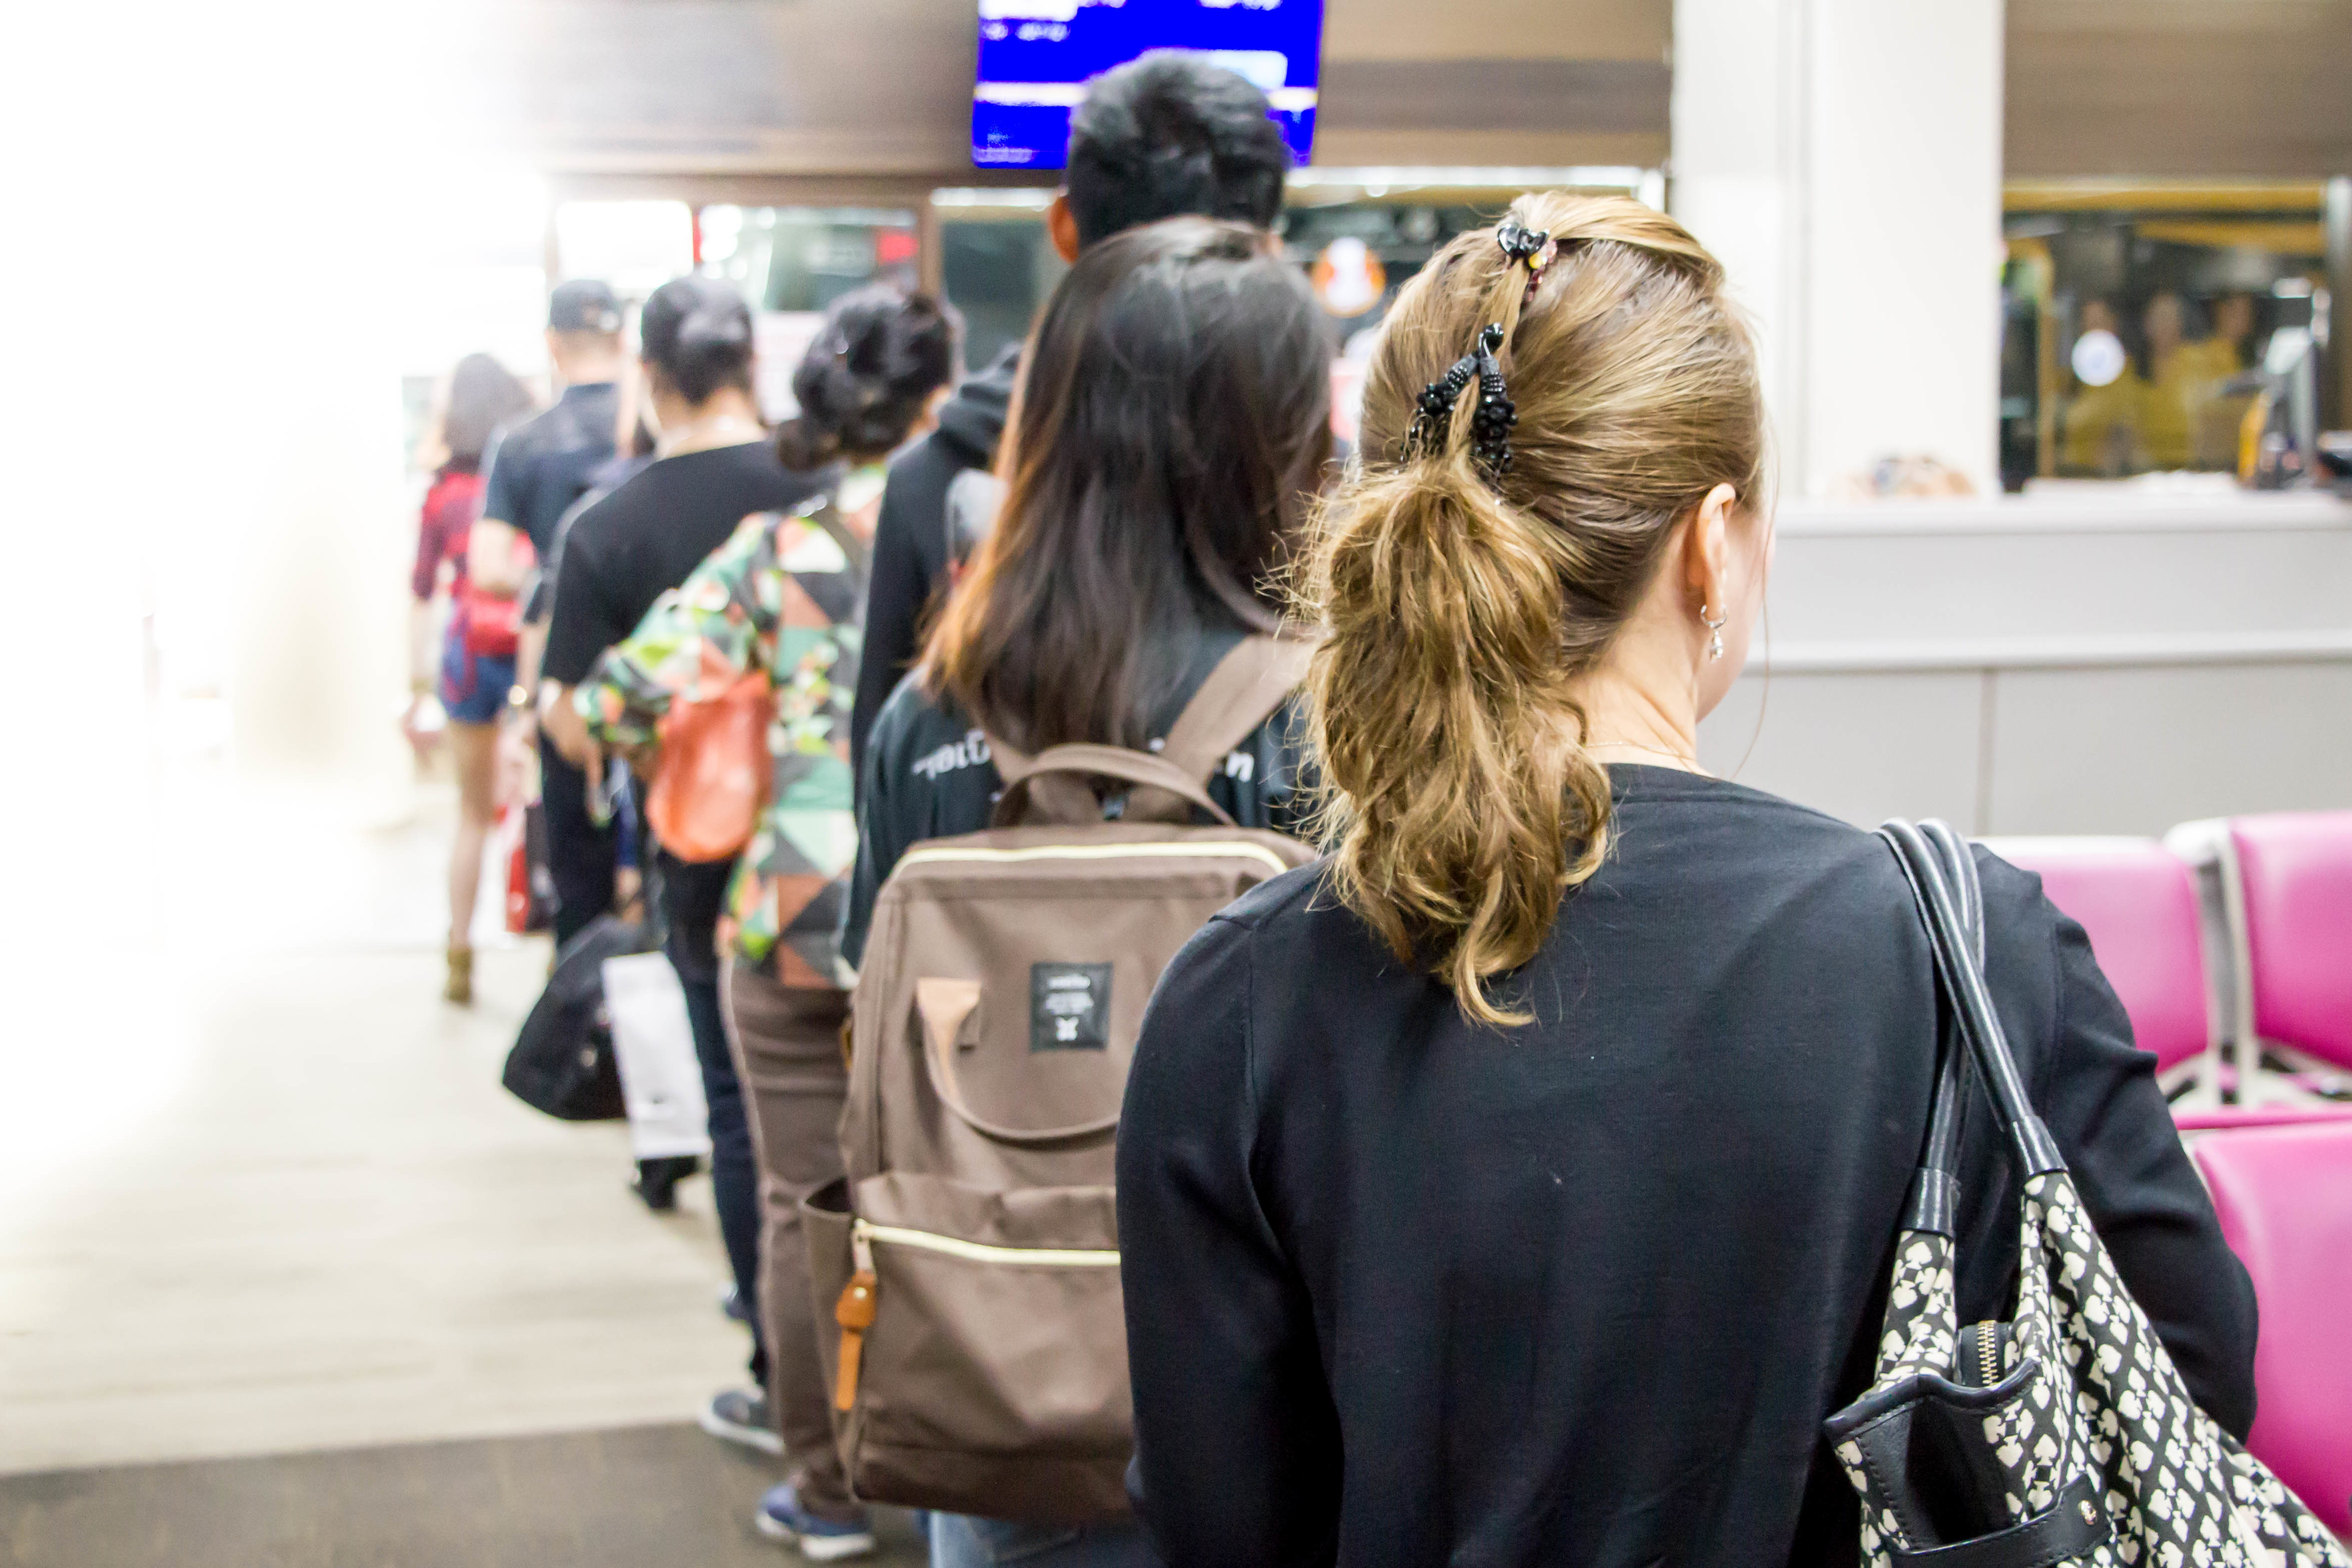 How much time does it take to collect the 'Visa on Arrival' at the airport in Vietnam?